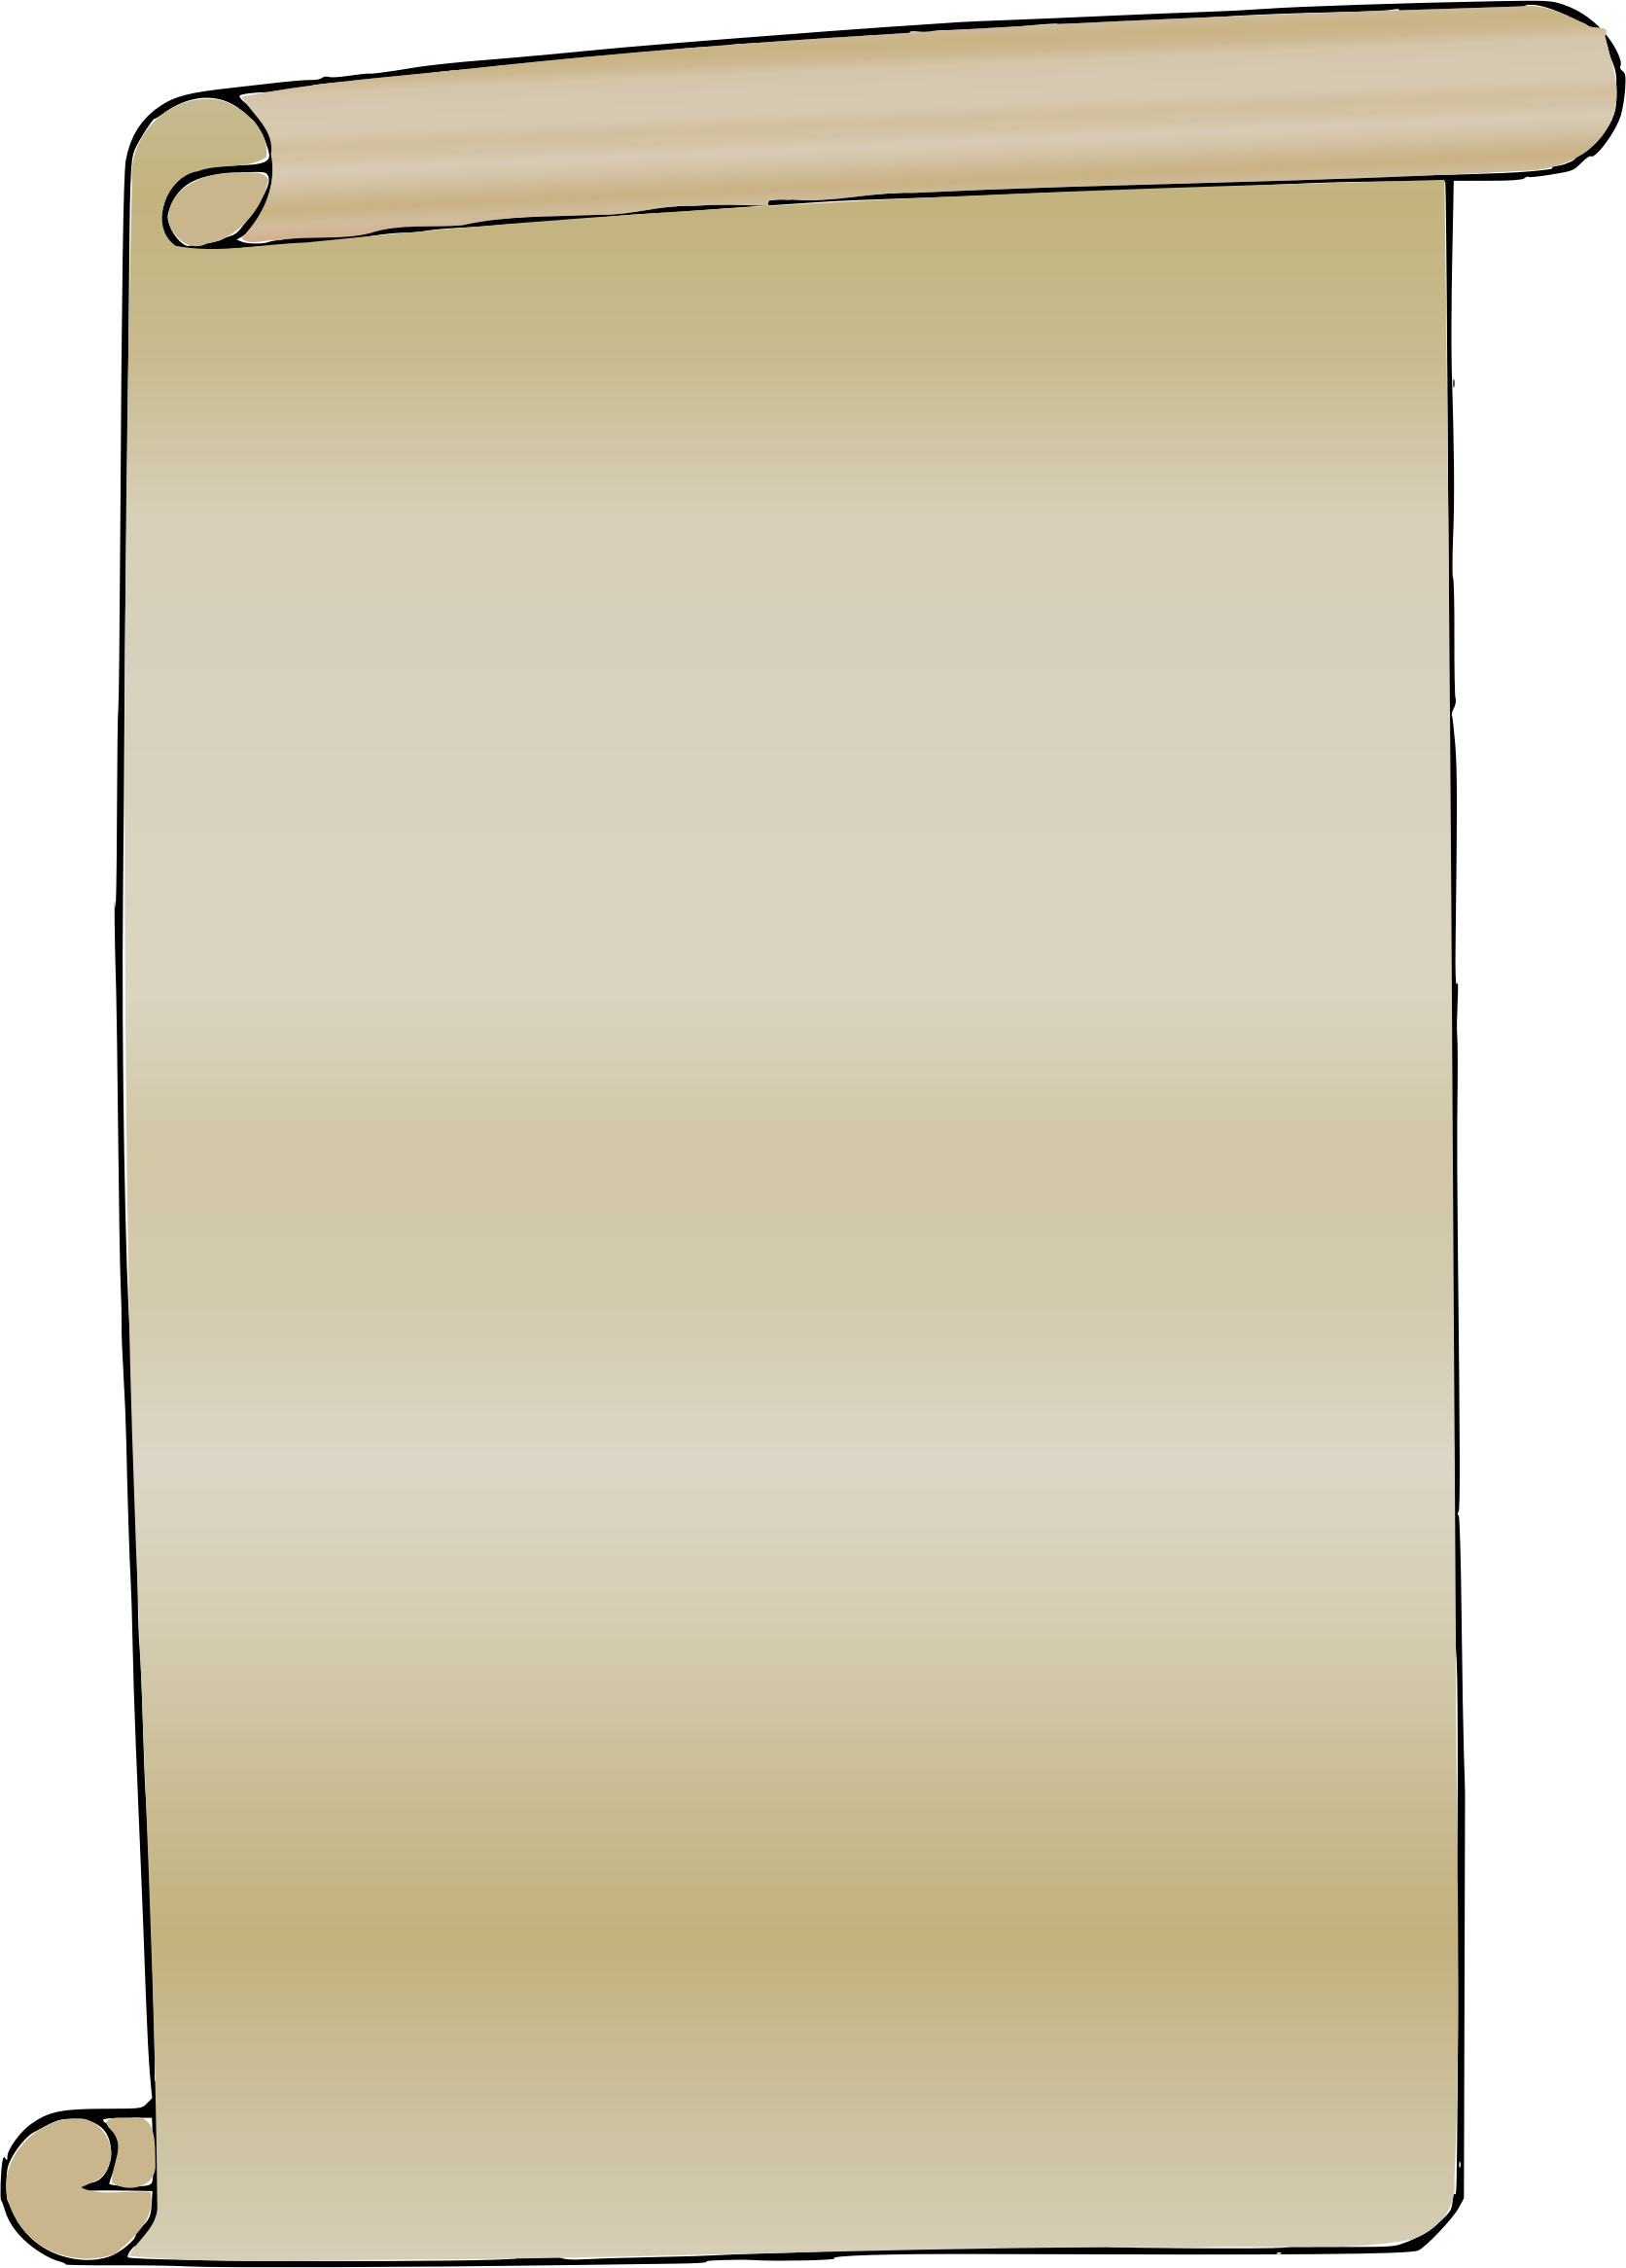 Paper image id png. Scroll clipart background